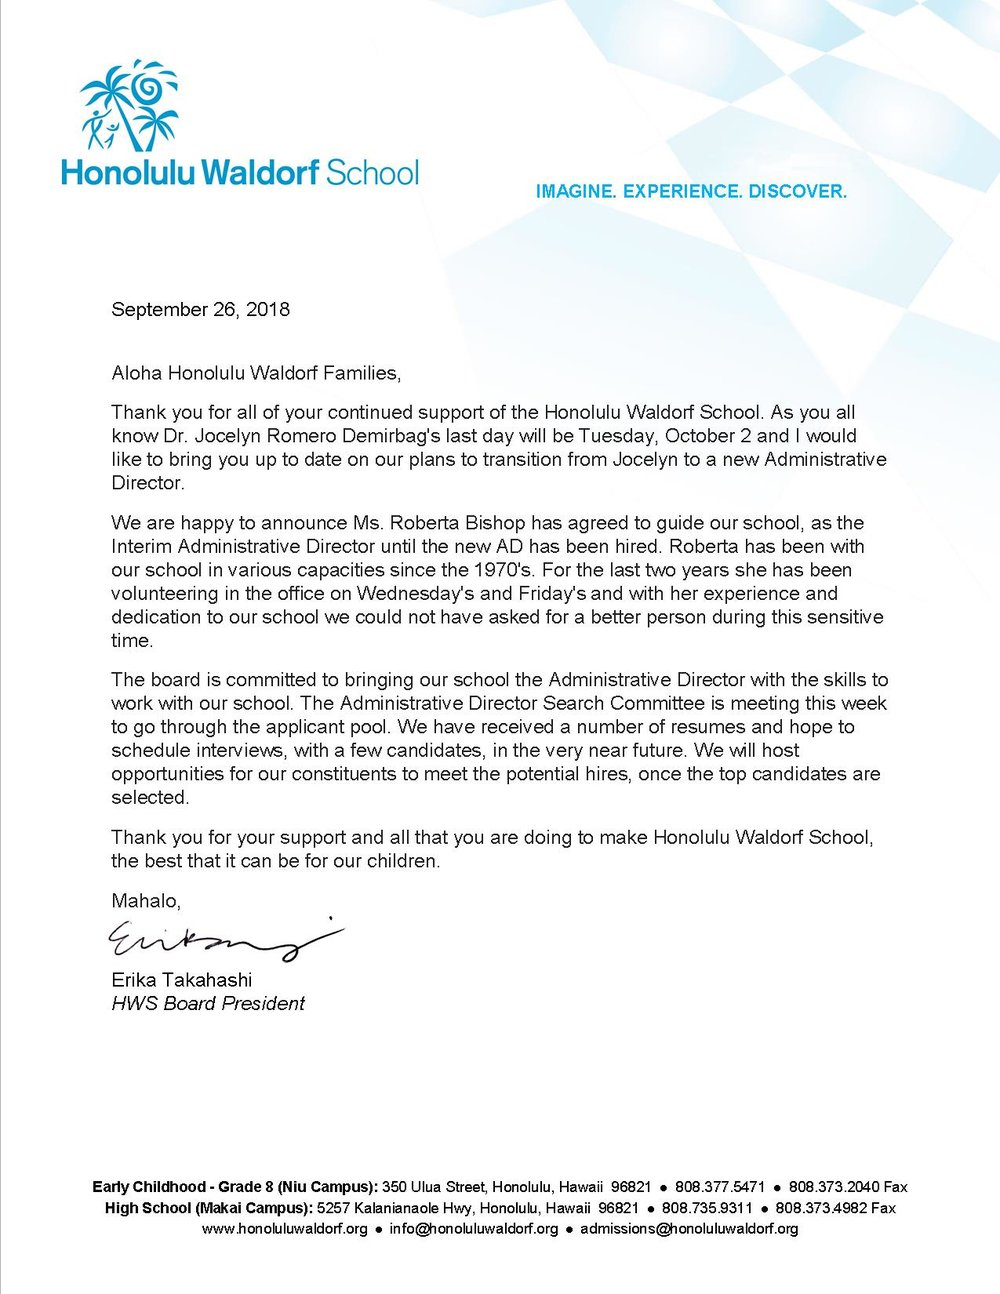 Board of directors letter regarding interim administrative director board of directors letter regarding interim administrative director honolulu waldorf school expocarfo Image collections